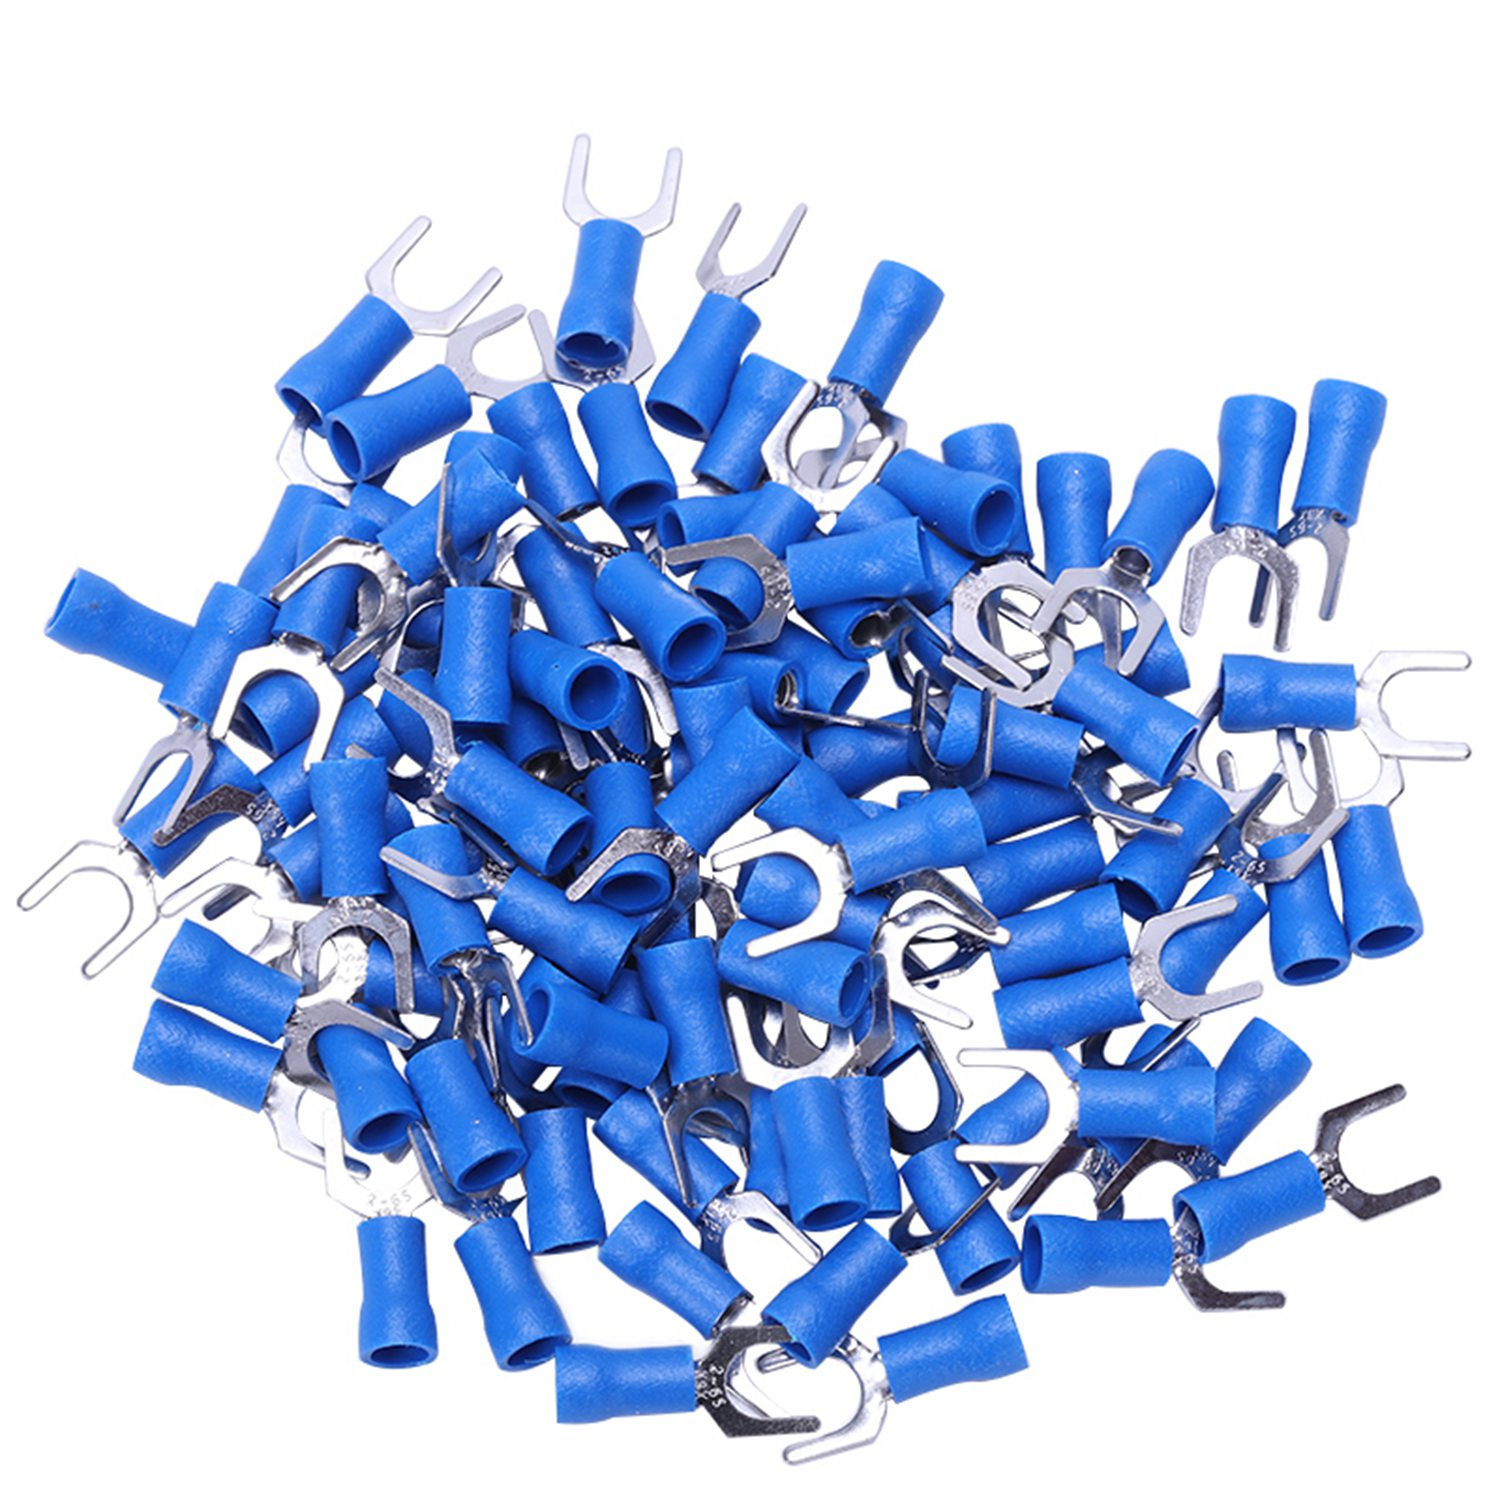 100pc Insulated Fork Spade Wire Connector Electrical Crimp Terminal 14-16AWG 6mm